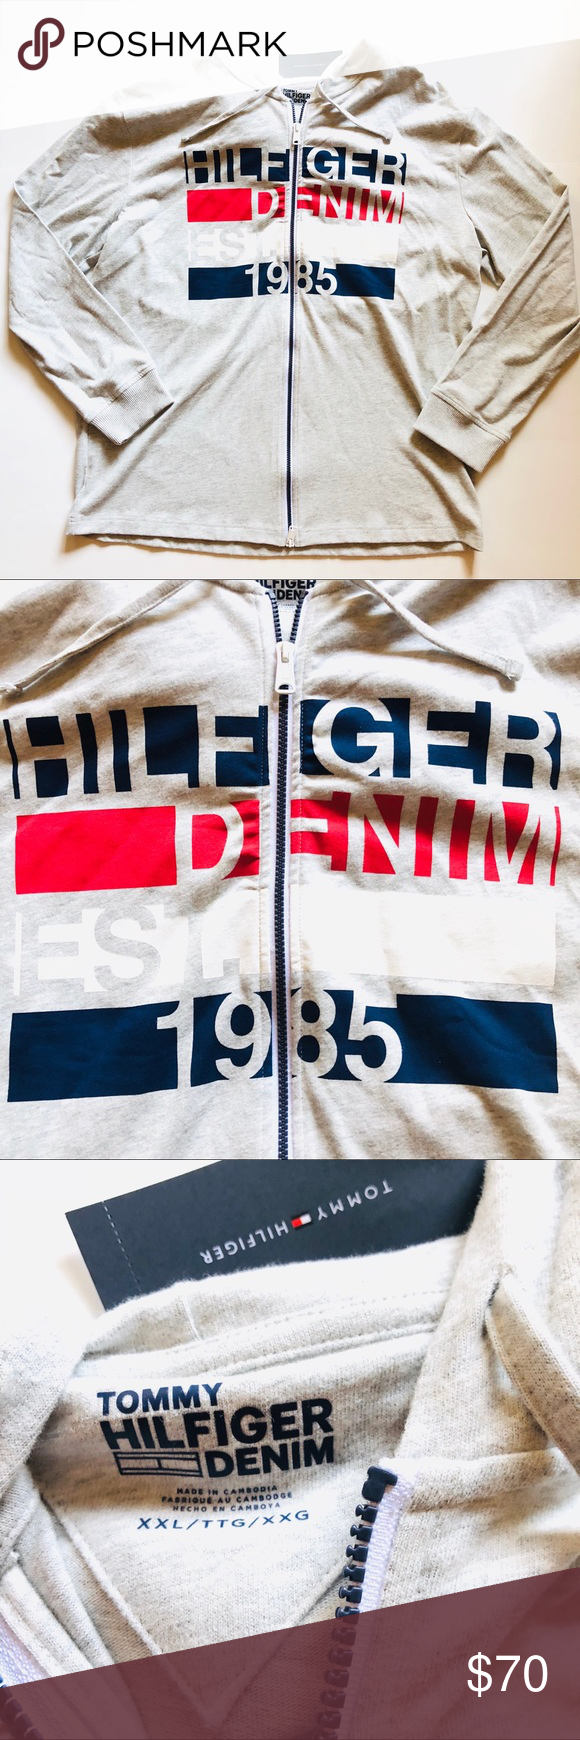 9fdd01d8ce941 Tommy Hilfiger Mens Long Sleeve Hoodie Sz XXL 2XL Brand New with Original  Tag - Tommy